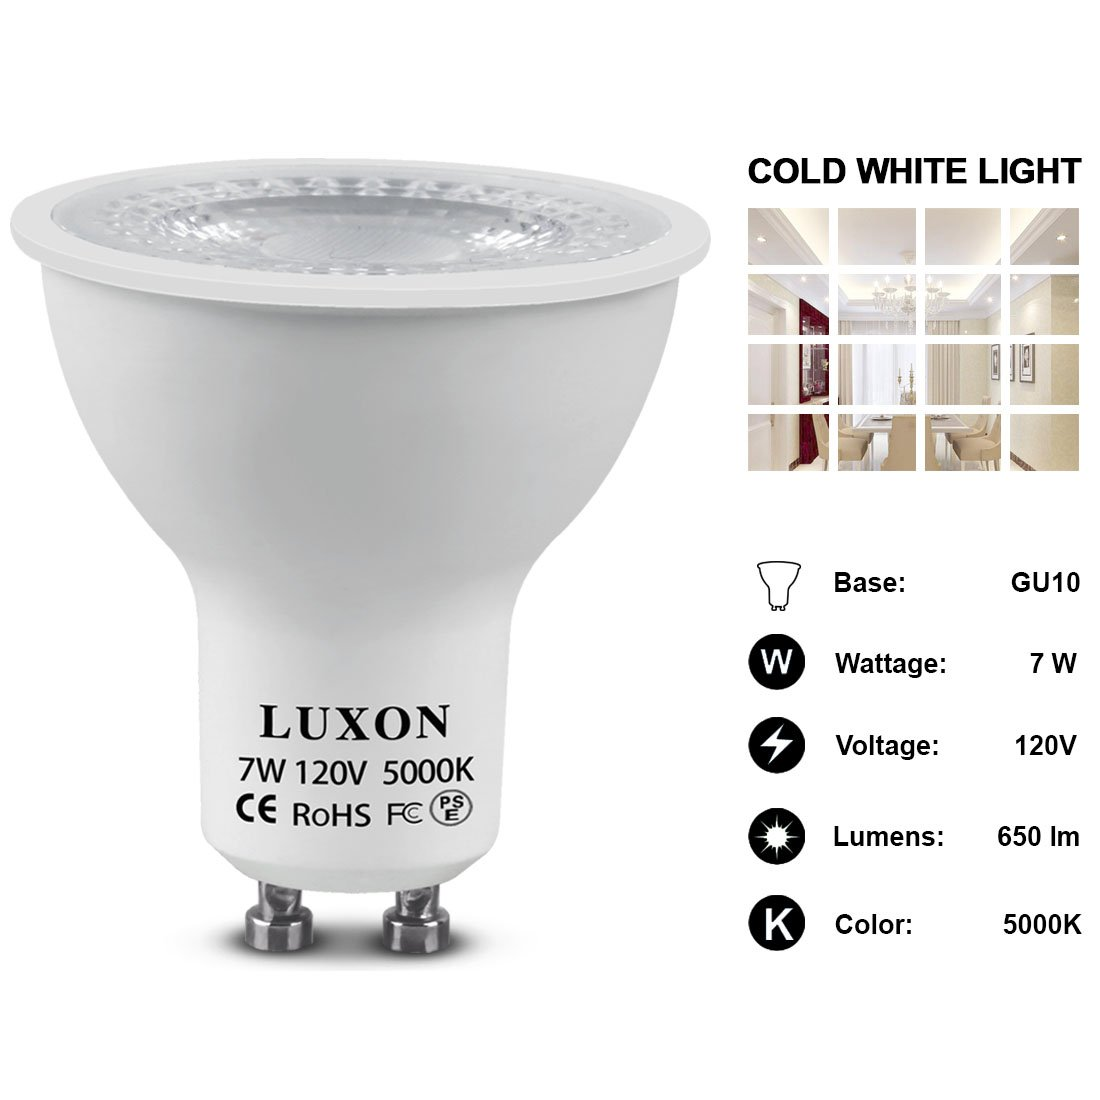 GU10 LED Light Bulbs 60W Equivalent Halogen Light Bulbs Cold White 5000K Spotlight Light Recessed Indoor Lights Pack of 6 by LUXON